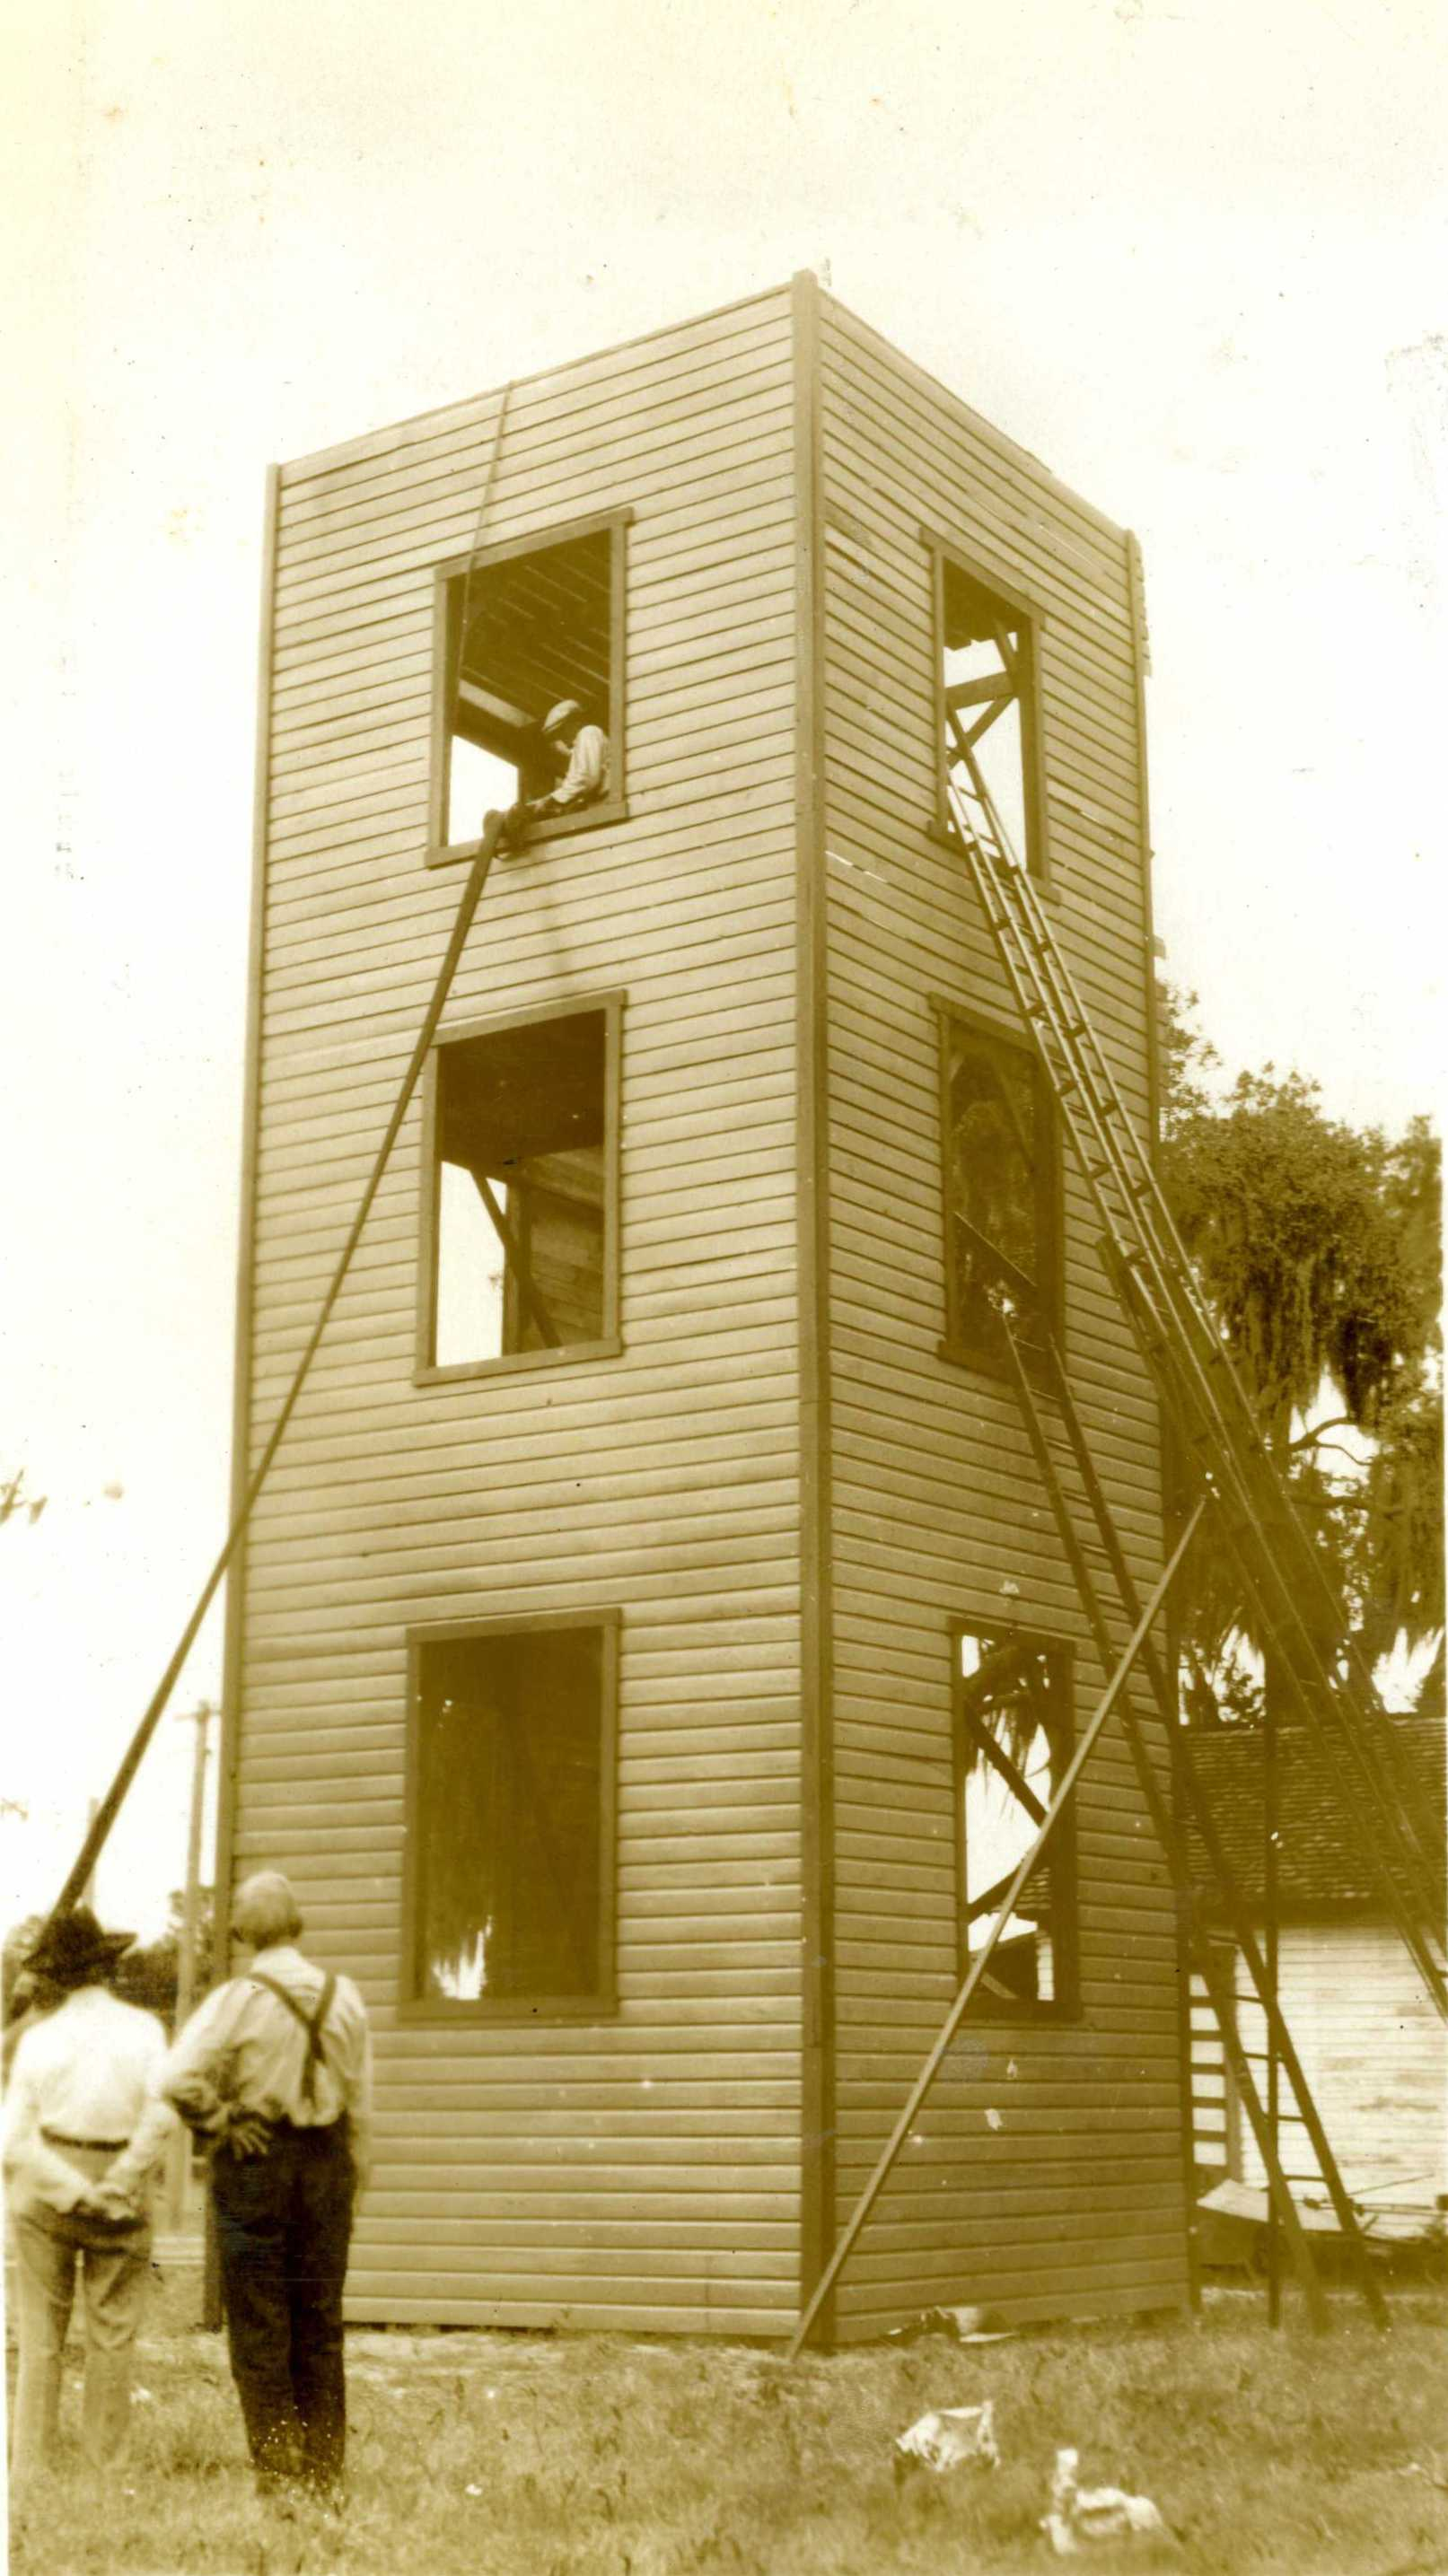 1931 fire college Tower